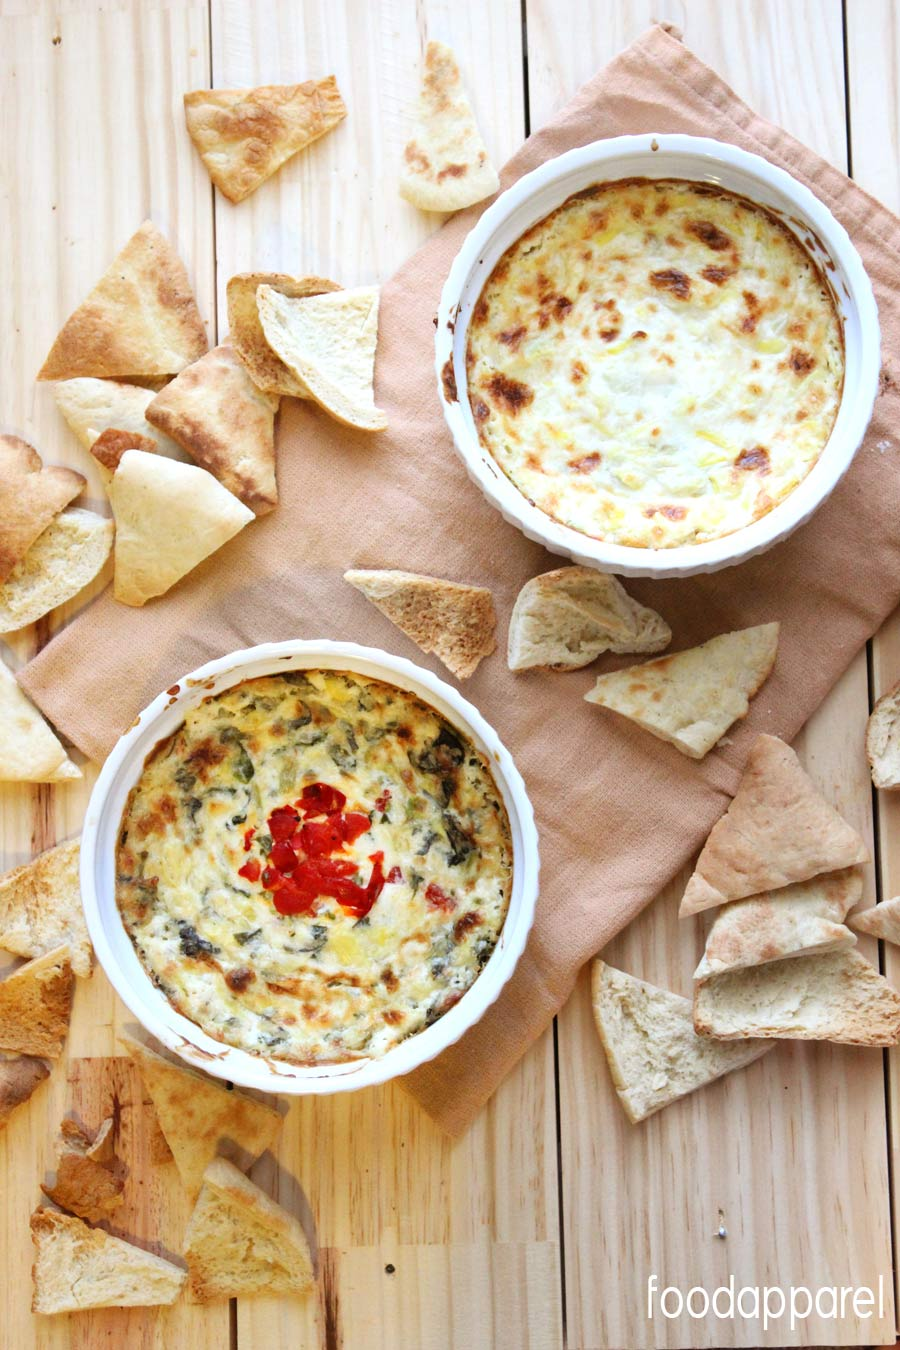 Hot Cheesy Spinach and Roasted Red Pepper Artichoke Dip Recipe - it will be the first thing to disappear at the appetizer table! @foodapparel